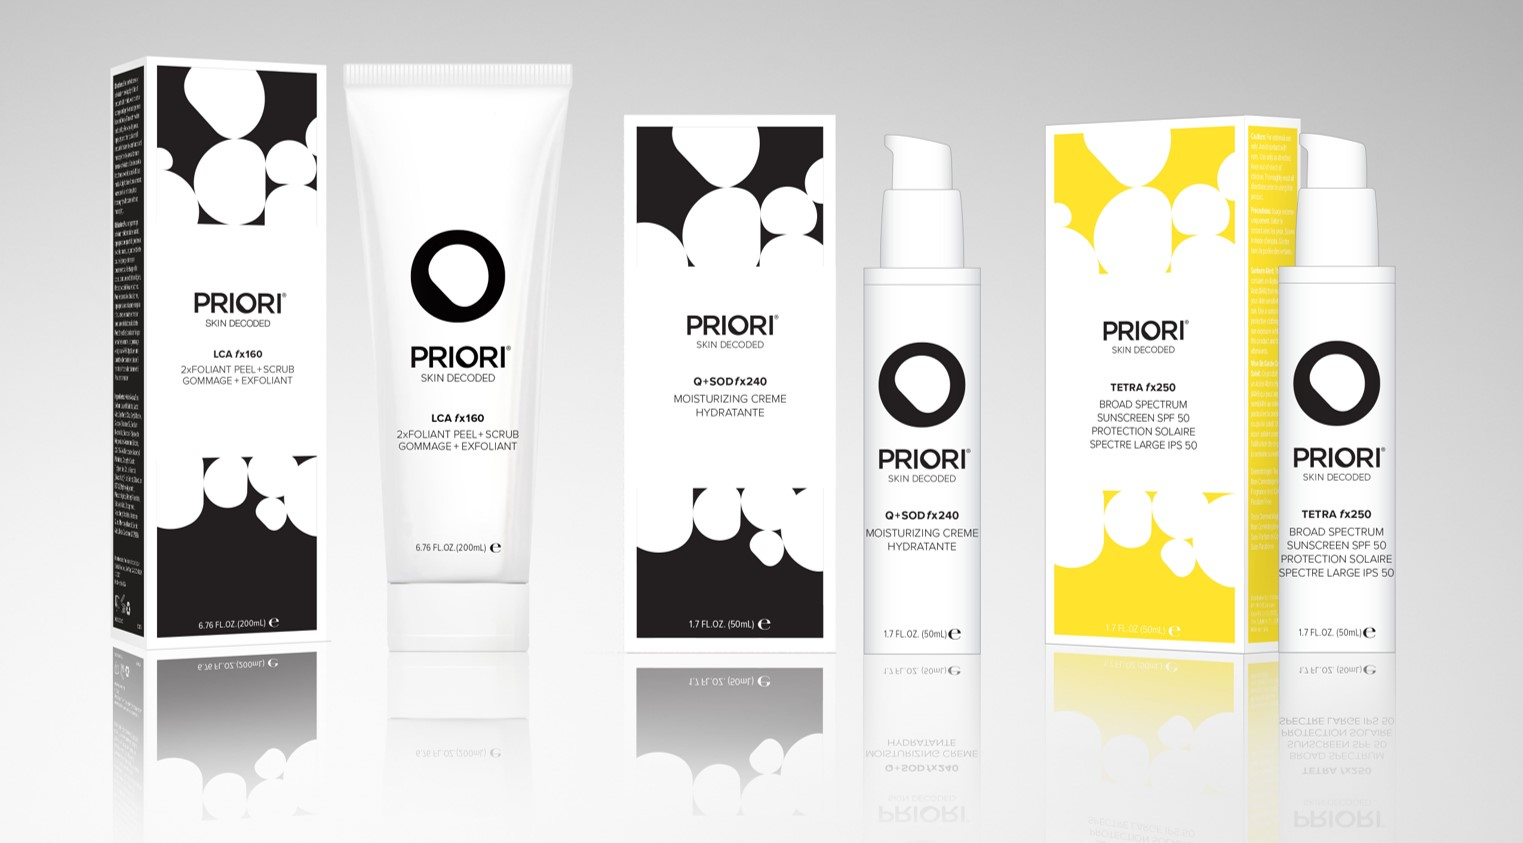 Priori Skin Decoded in de regio Plasmolen